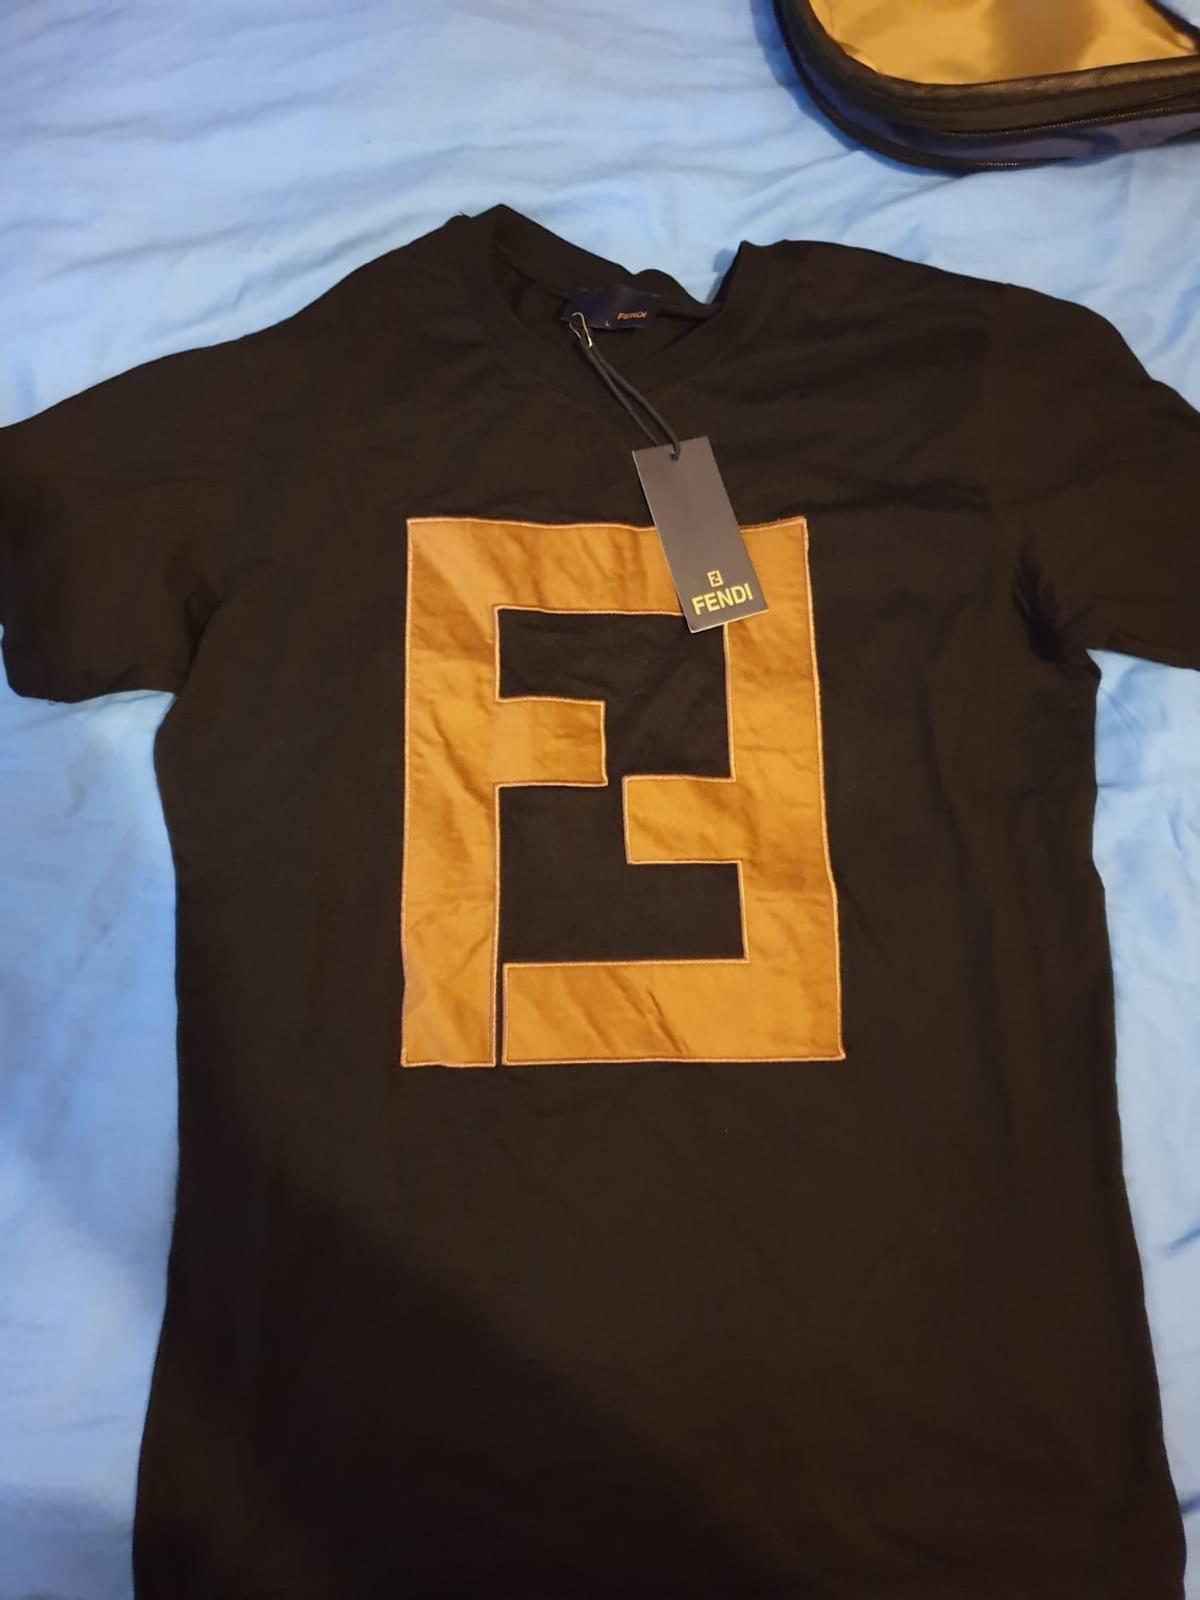 4cf88a23cb8f Fendi T-shirt Large in N22 London Borough of Haringey for £55.00 for ...